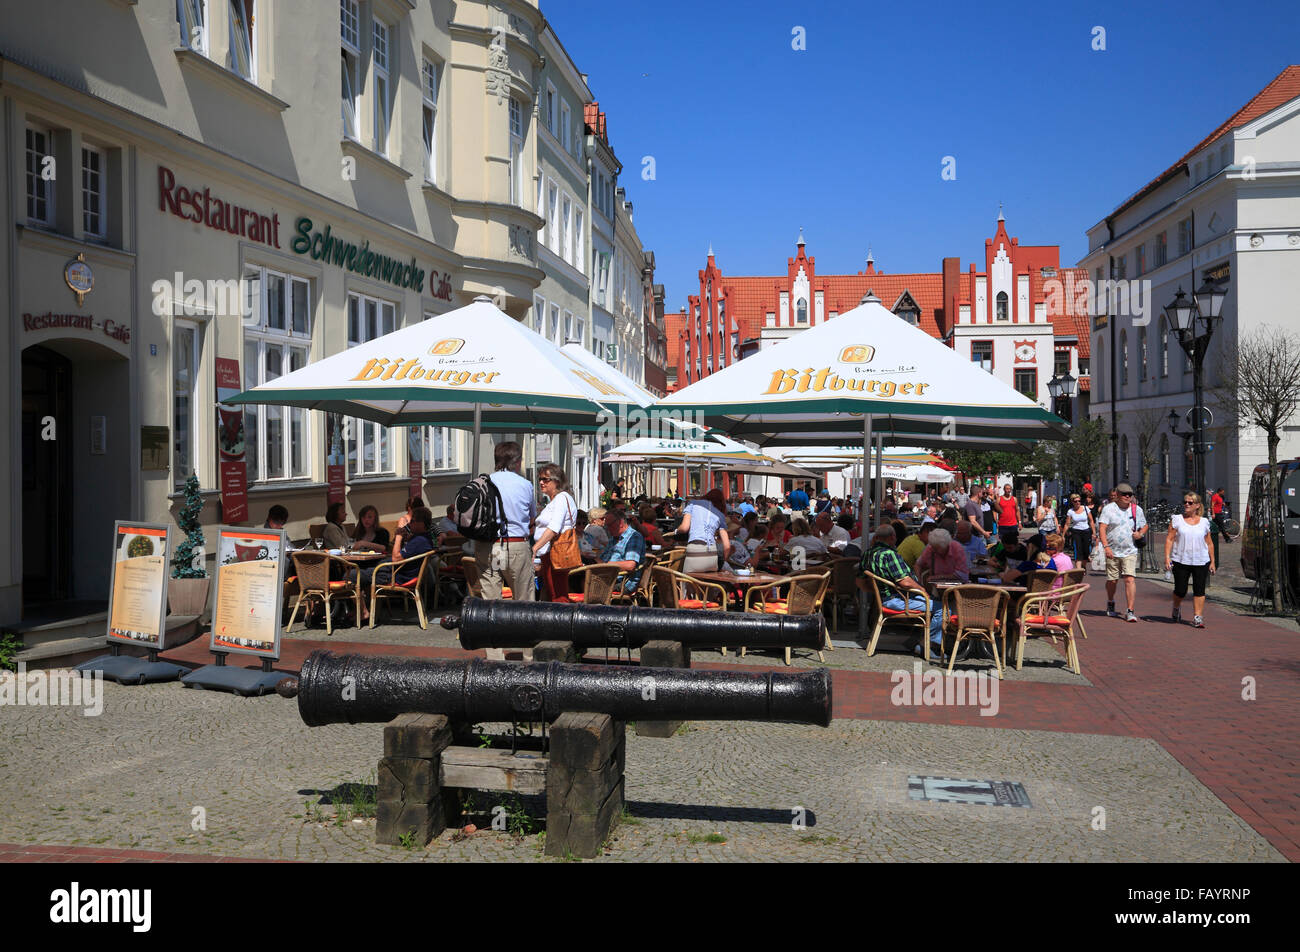 Cafes at market square,  Wismar, Baltic Sea, Mecklenburg Western Pomerania, Germany, Europe - Stock Image